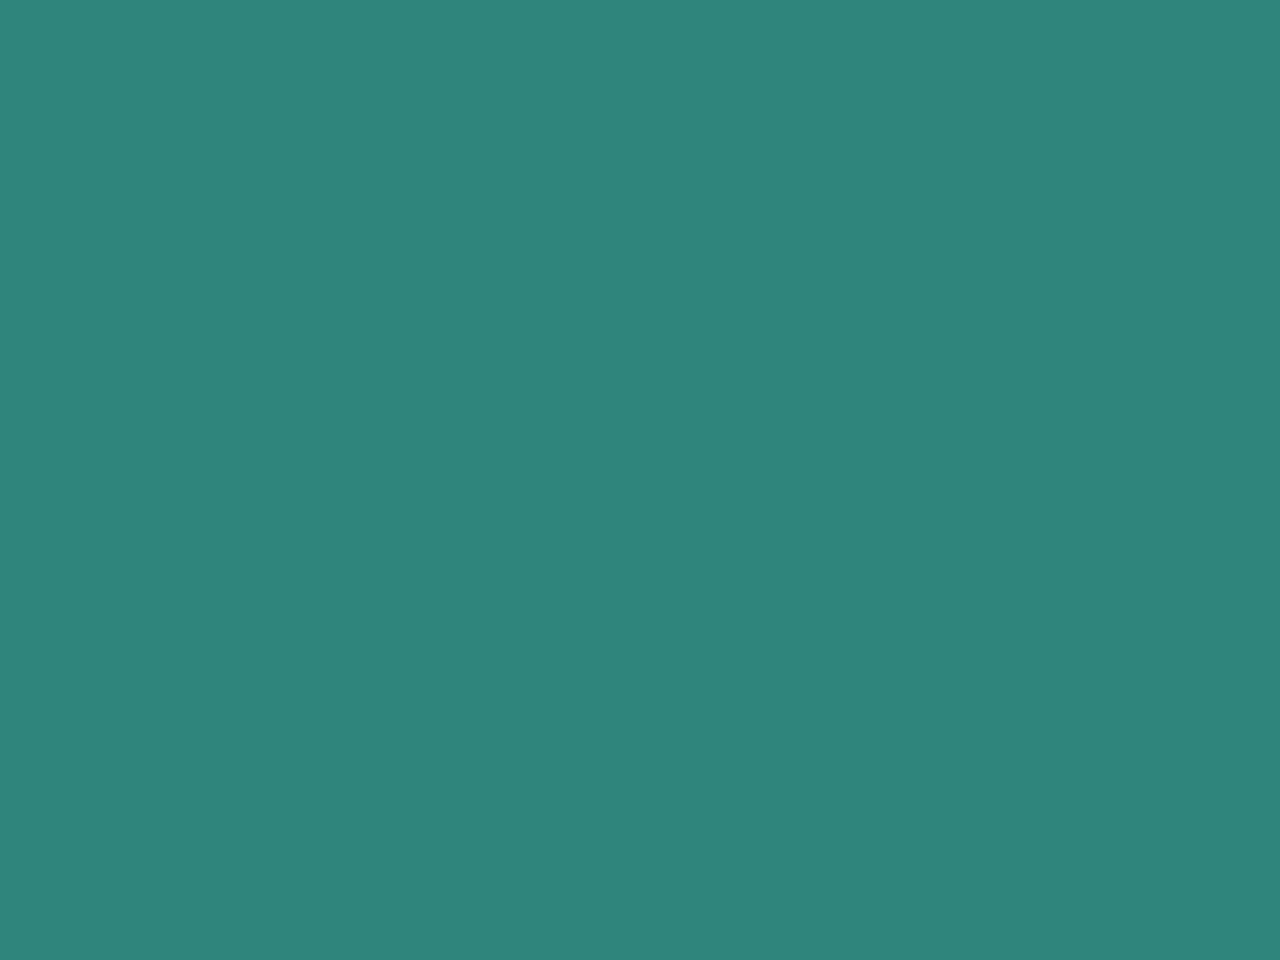 1280x960 Celadon Green Solid Color Background